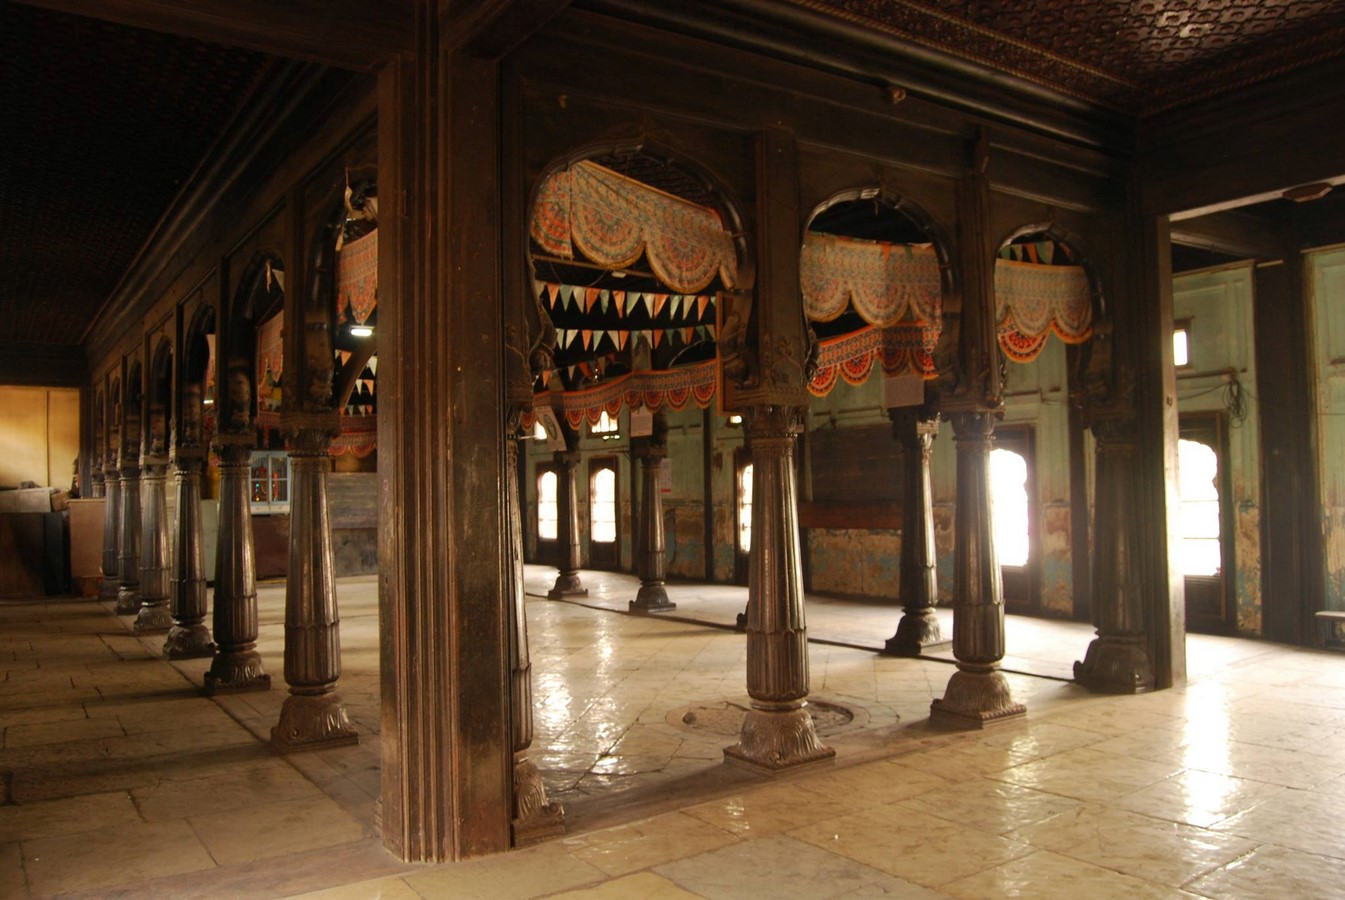 History of architecture in the Peshwa dynasty - Sheet6